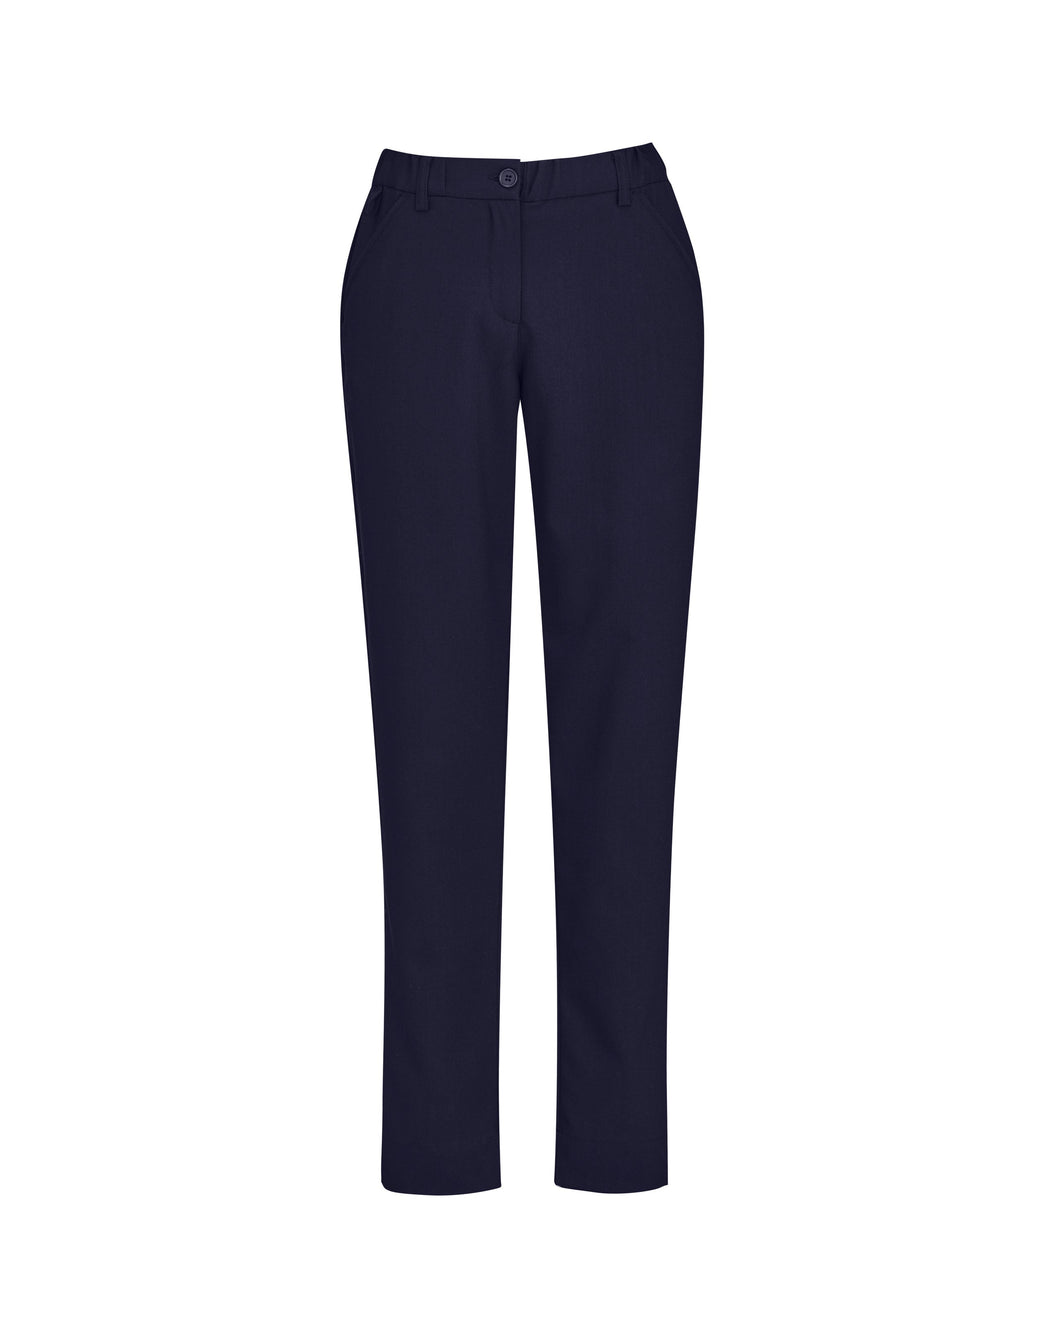 Women's Navy Comfort Waist Slim Leg Pants